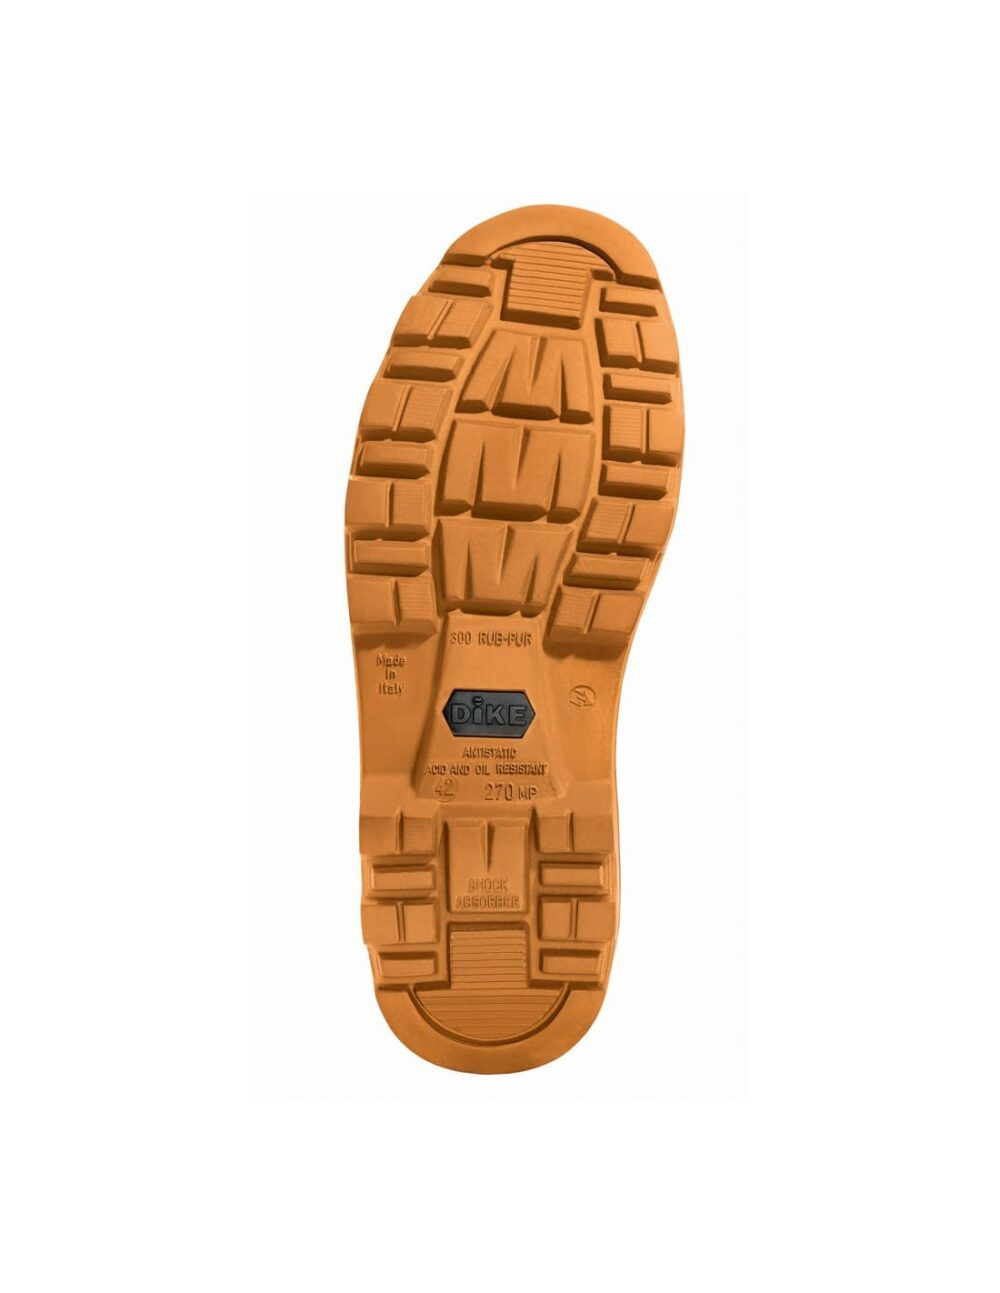 Highly resistant grip sole on digger safety workwear boot.